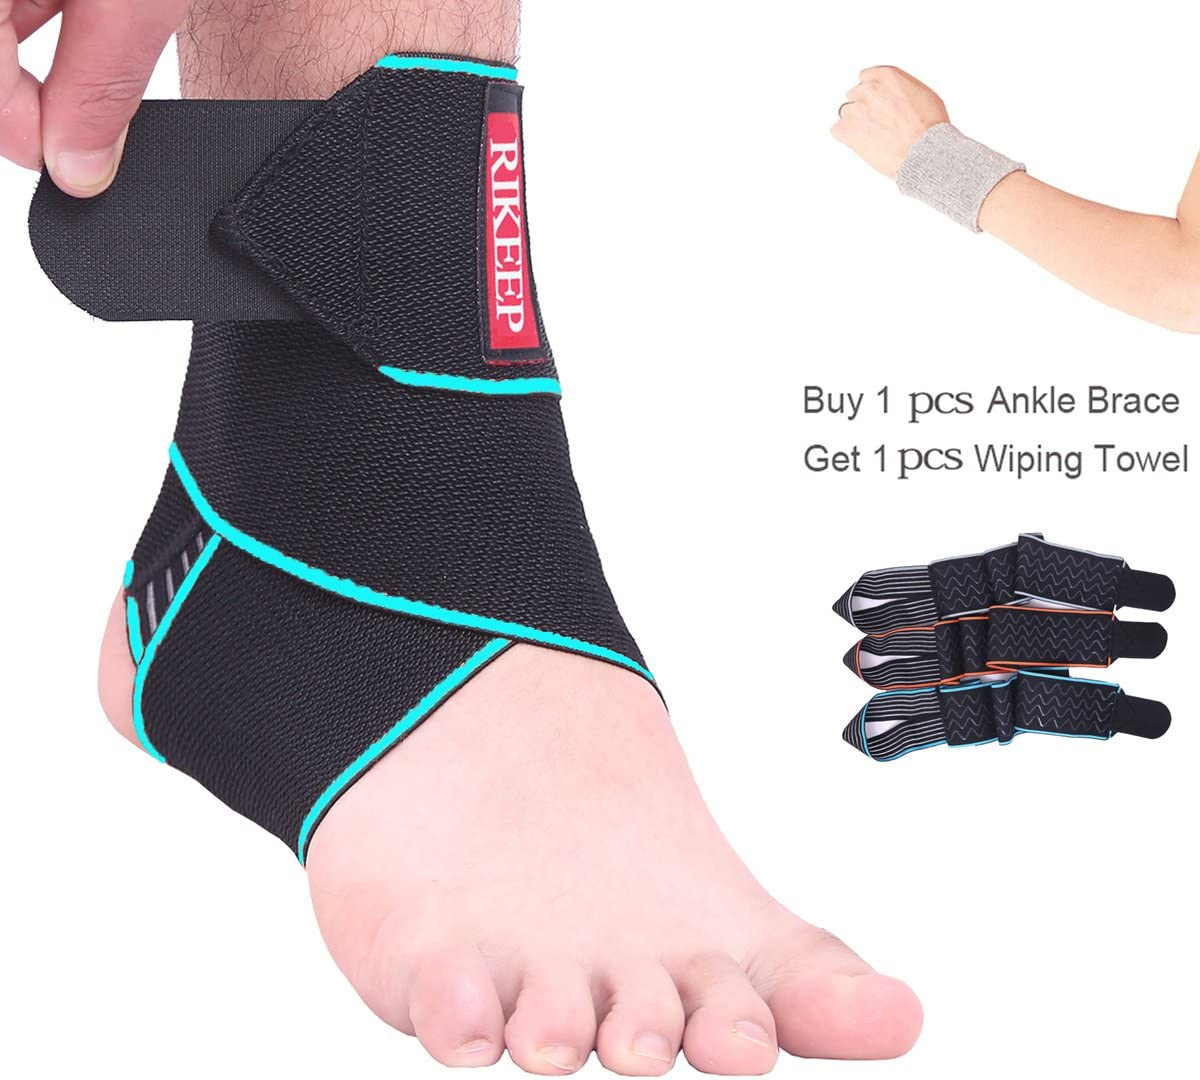 Ankle Support,Adjustable Ankle Brace Breathable Nylon Material Super Elastic and Comfortable,1 Size Fits all, Protects Against Chronic Ankle Strain, Sprains Fatigue,blue: Health & Personal Care